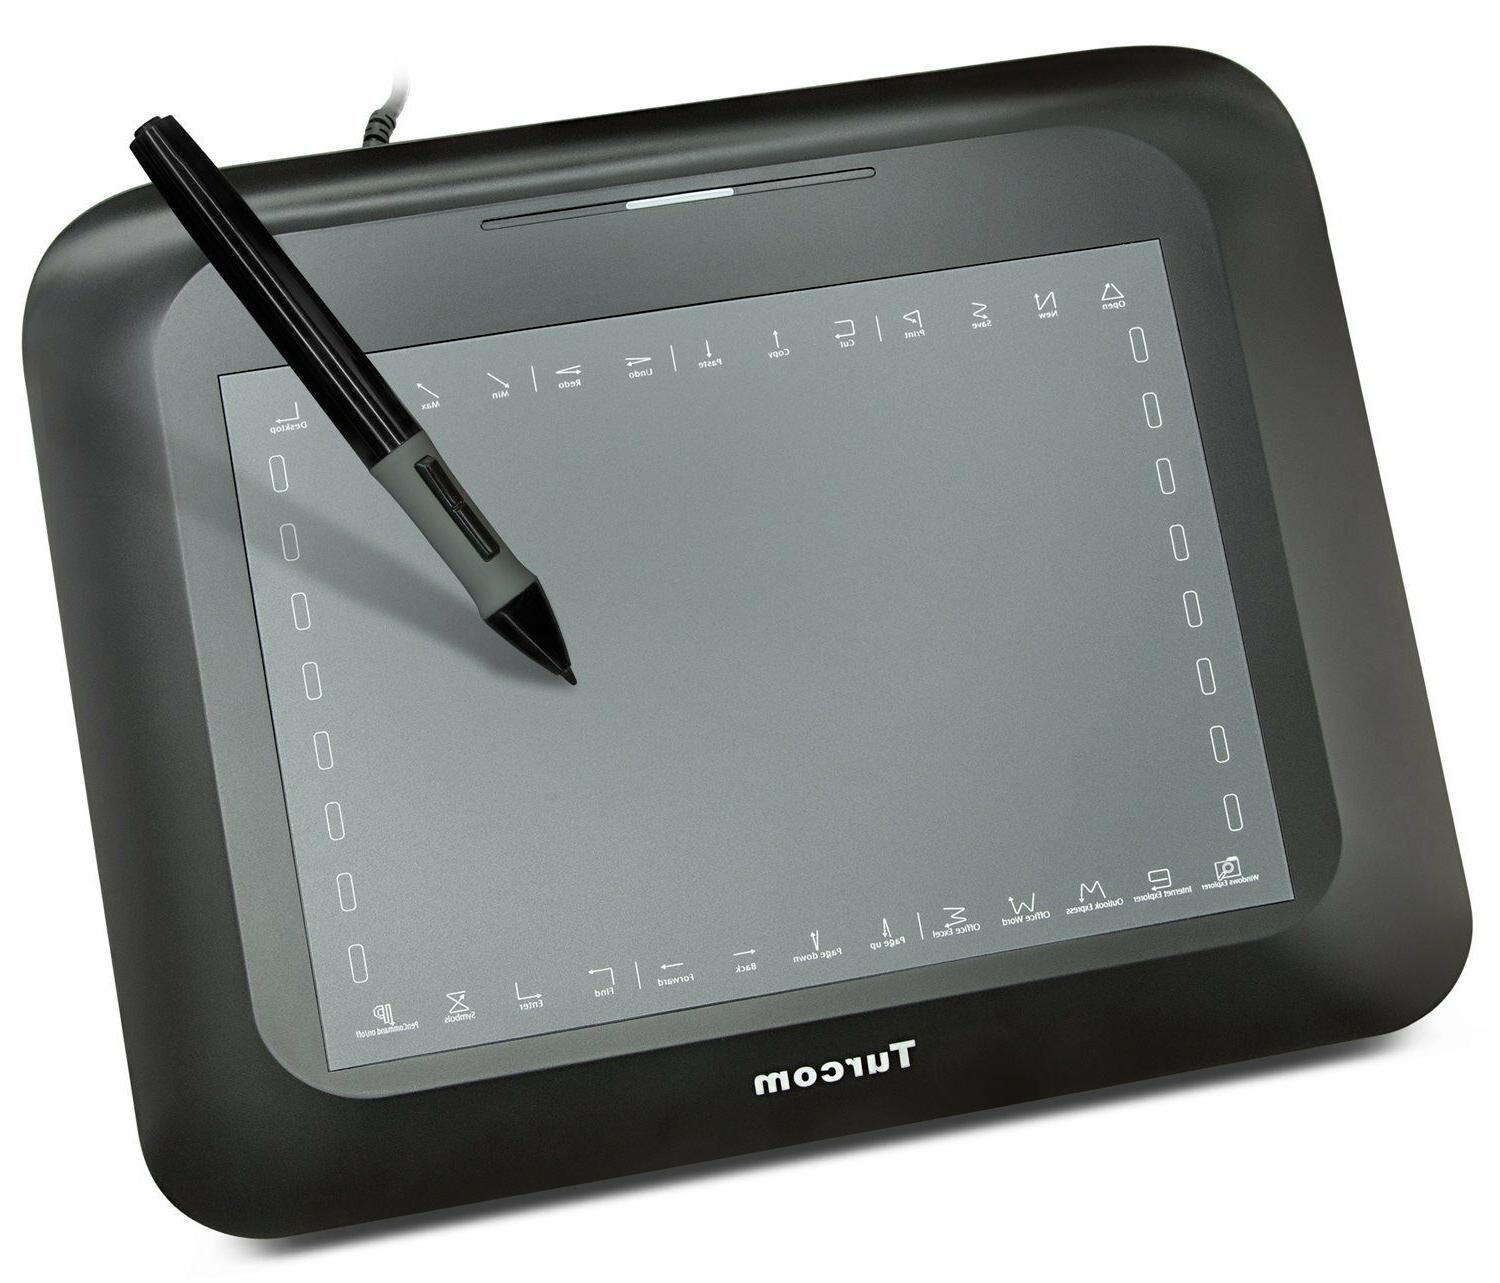 Turcom TS-6608 Graphic Tablet Drawing Tablets and Pen/Stylus